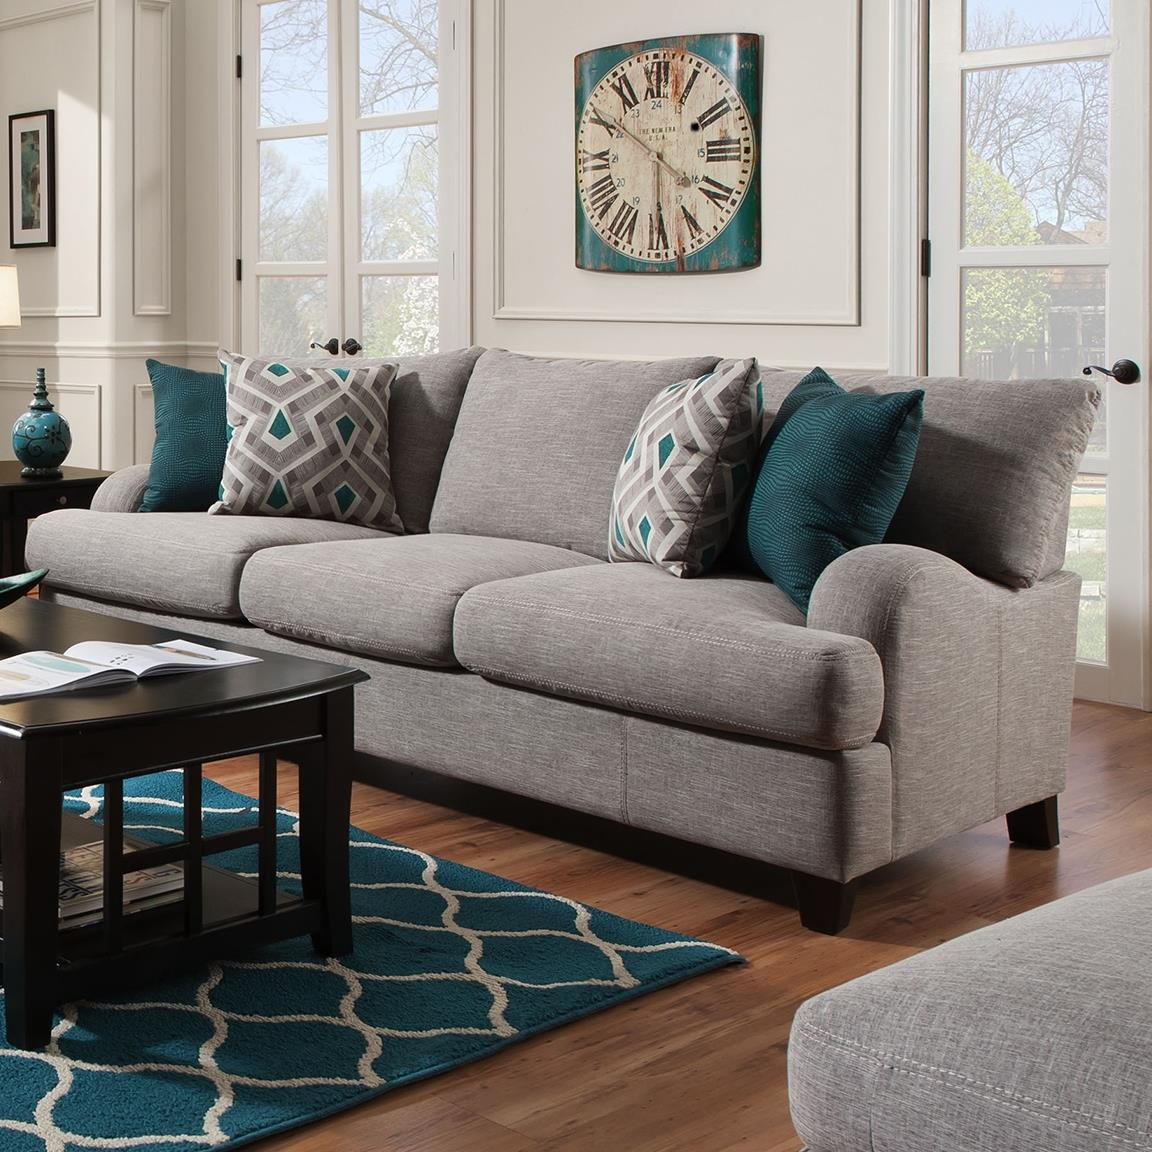 craftmaster living room furniture small interior decoration franklin paradigm sofa with bold accent pillows | olinde's ...